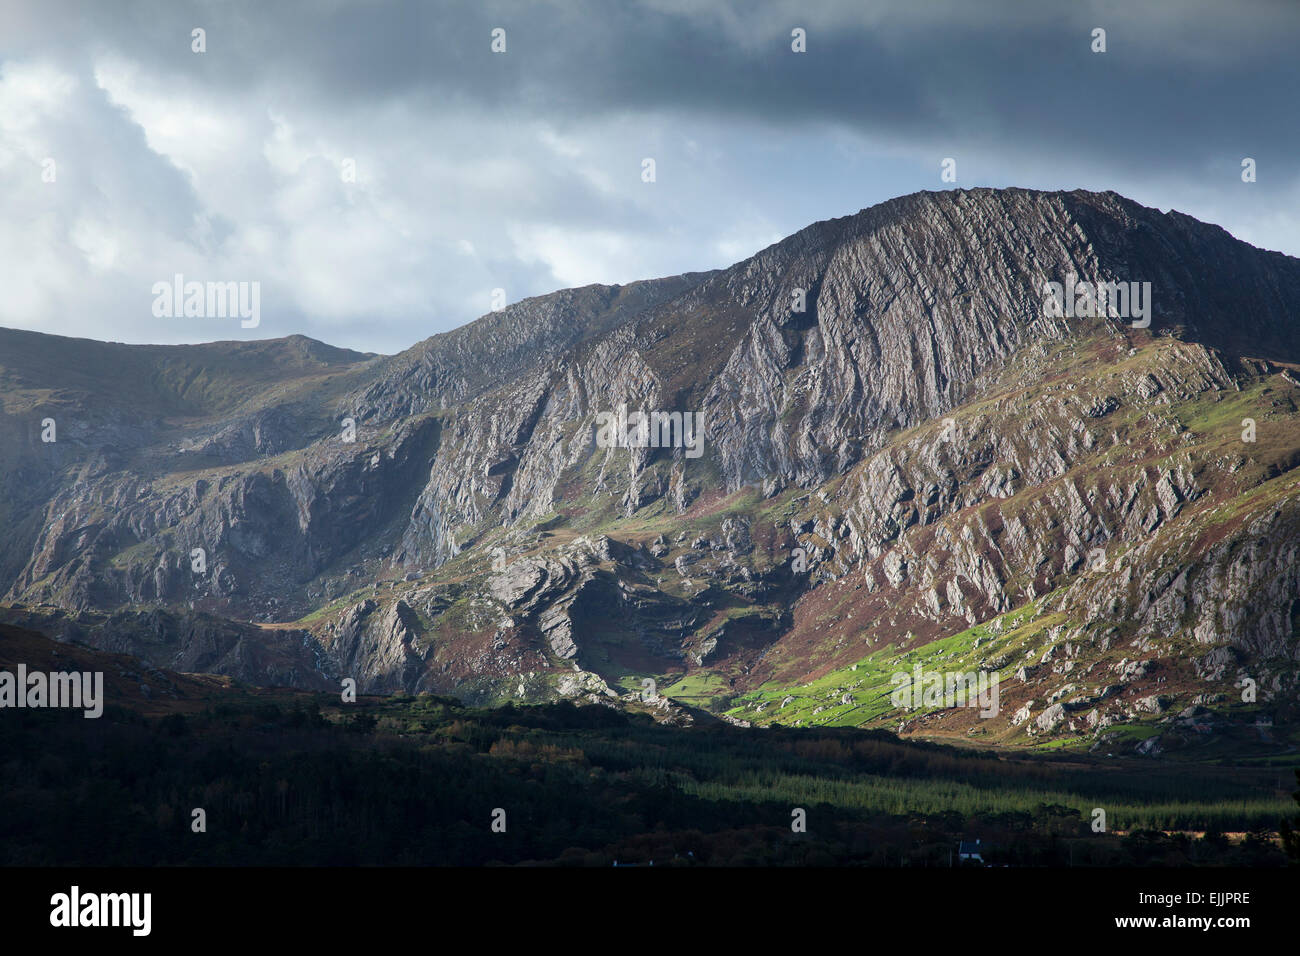 Exposed sandstone rock on Coomacloghane mountain, Glanmore Valley, Beara Peninsula, County Kerry, Ireland. - Stock Image